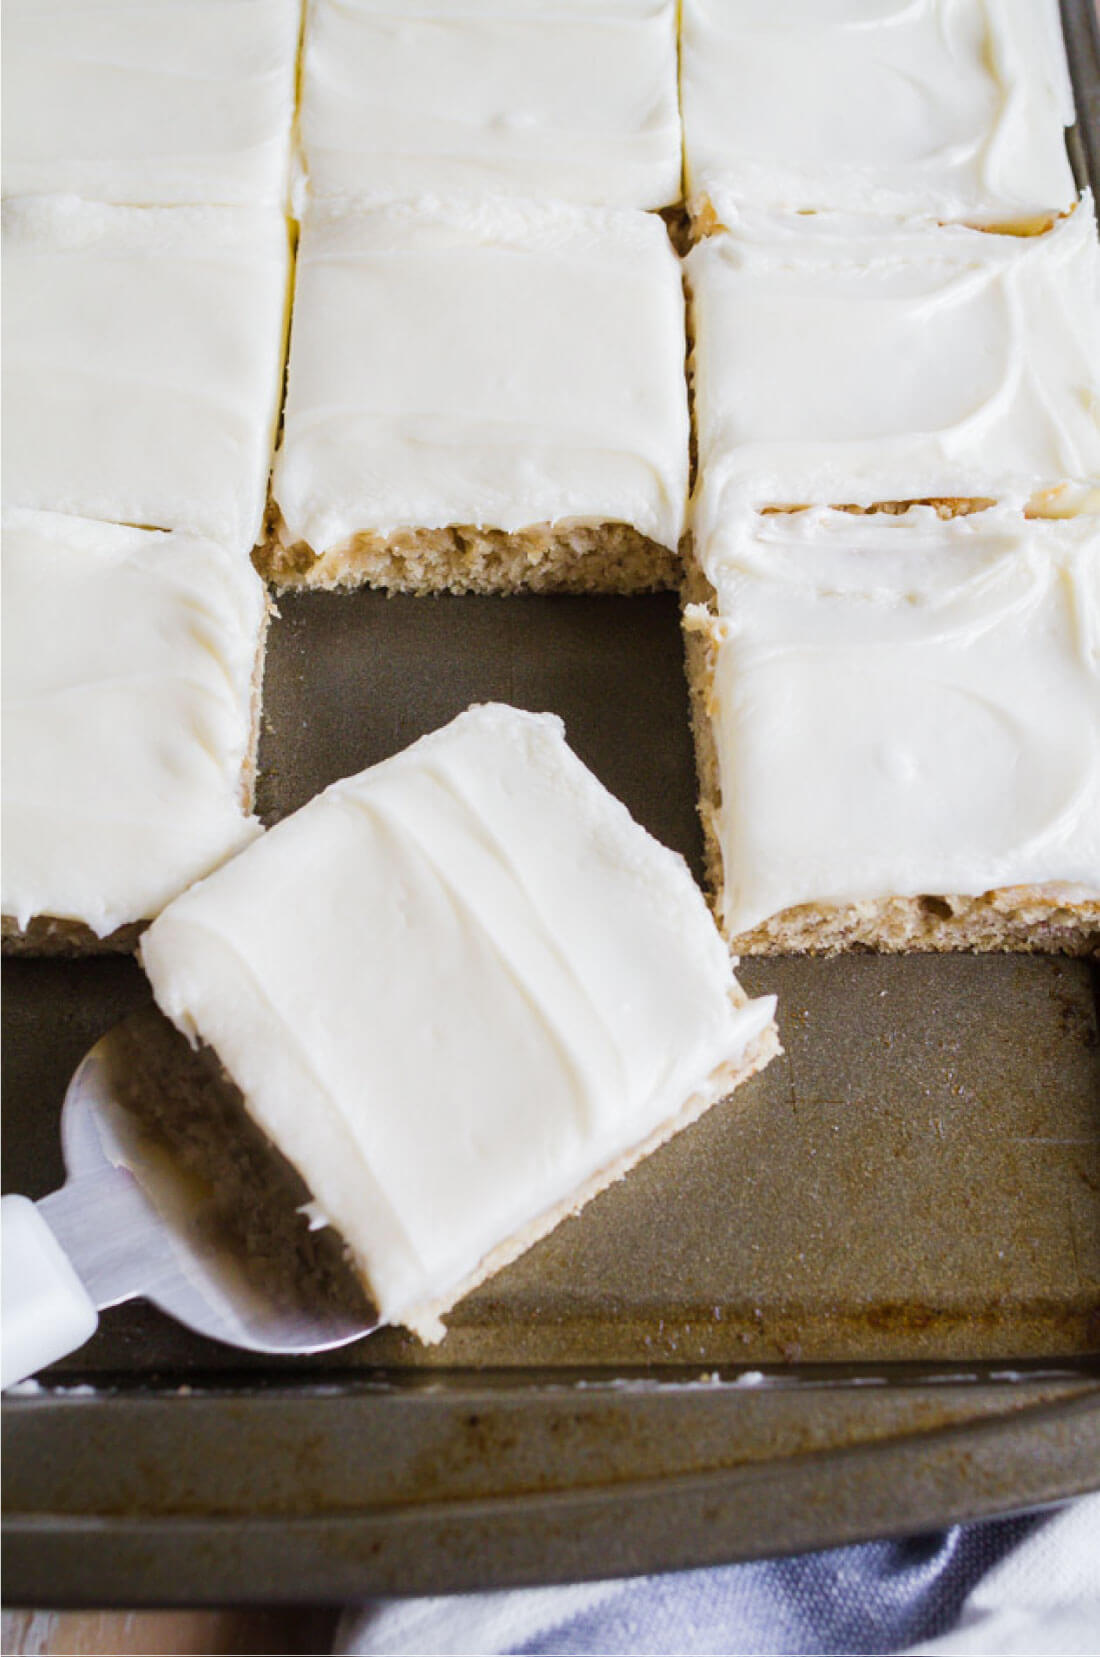 Frosted Banana Bars Recipe - use overripe bananas to make this recipe with cream cheese frosting. Serving a square.